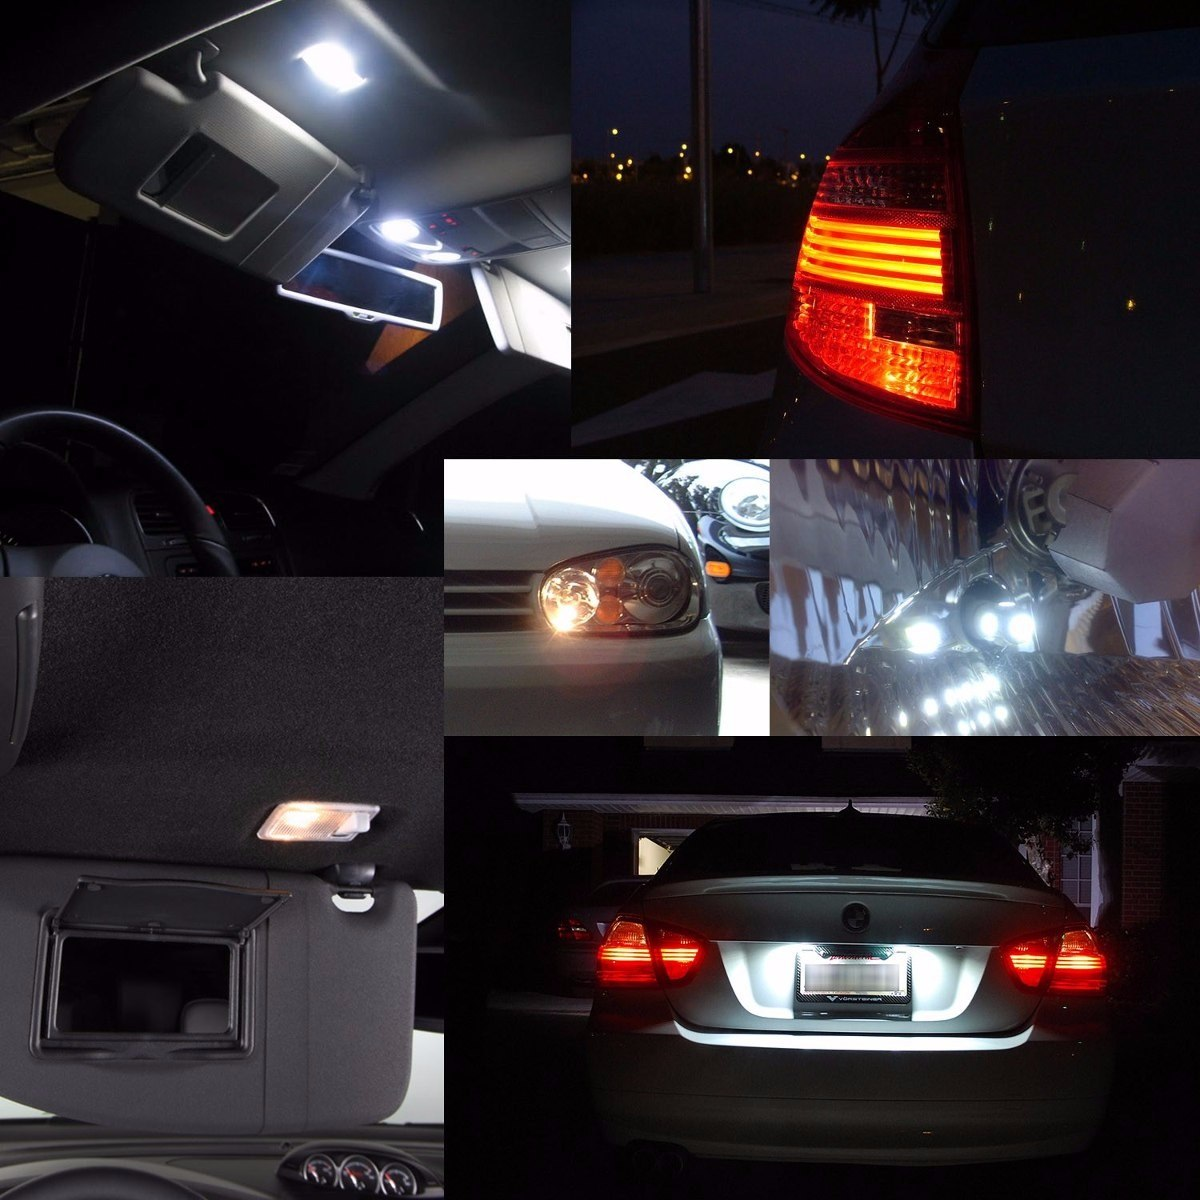 Kit de luces bora vw led interior cuartos portaplacas mk5 en mercado libre - Kit de interior ...